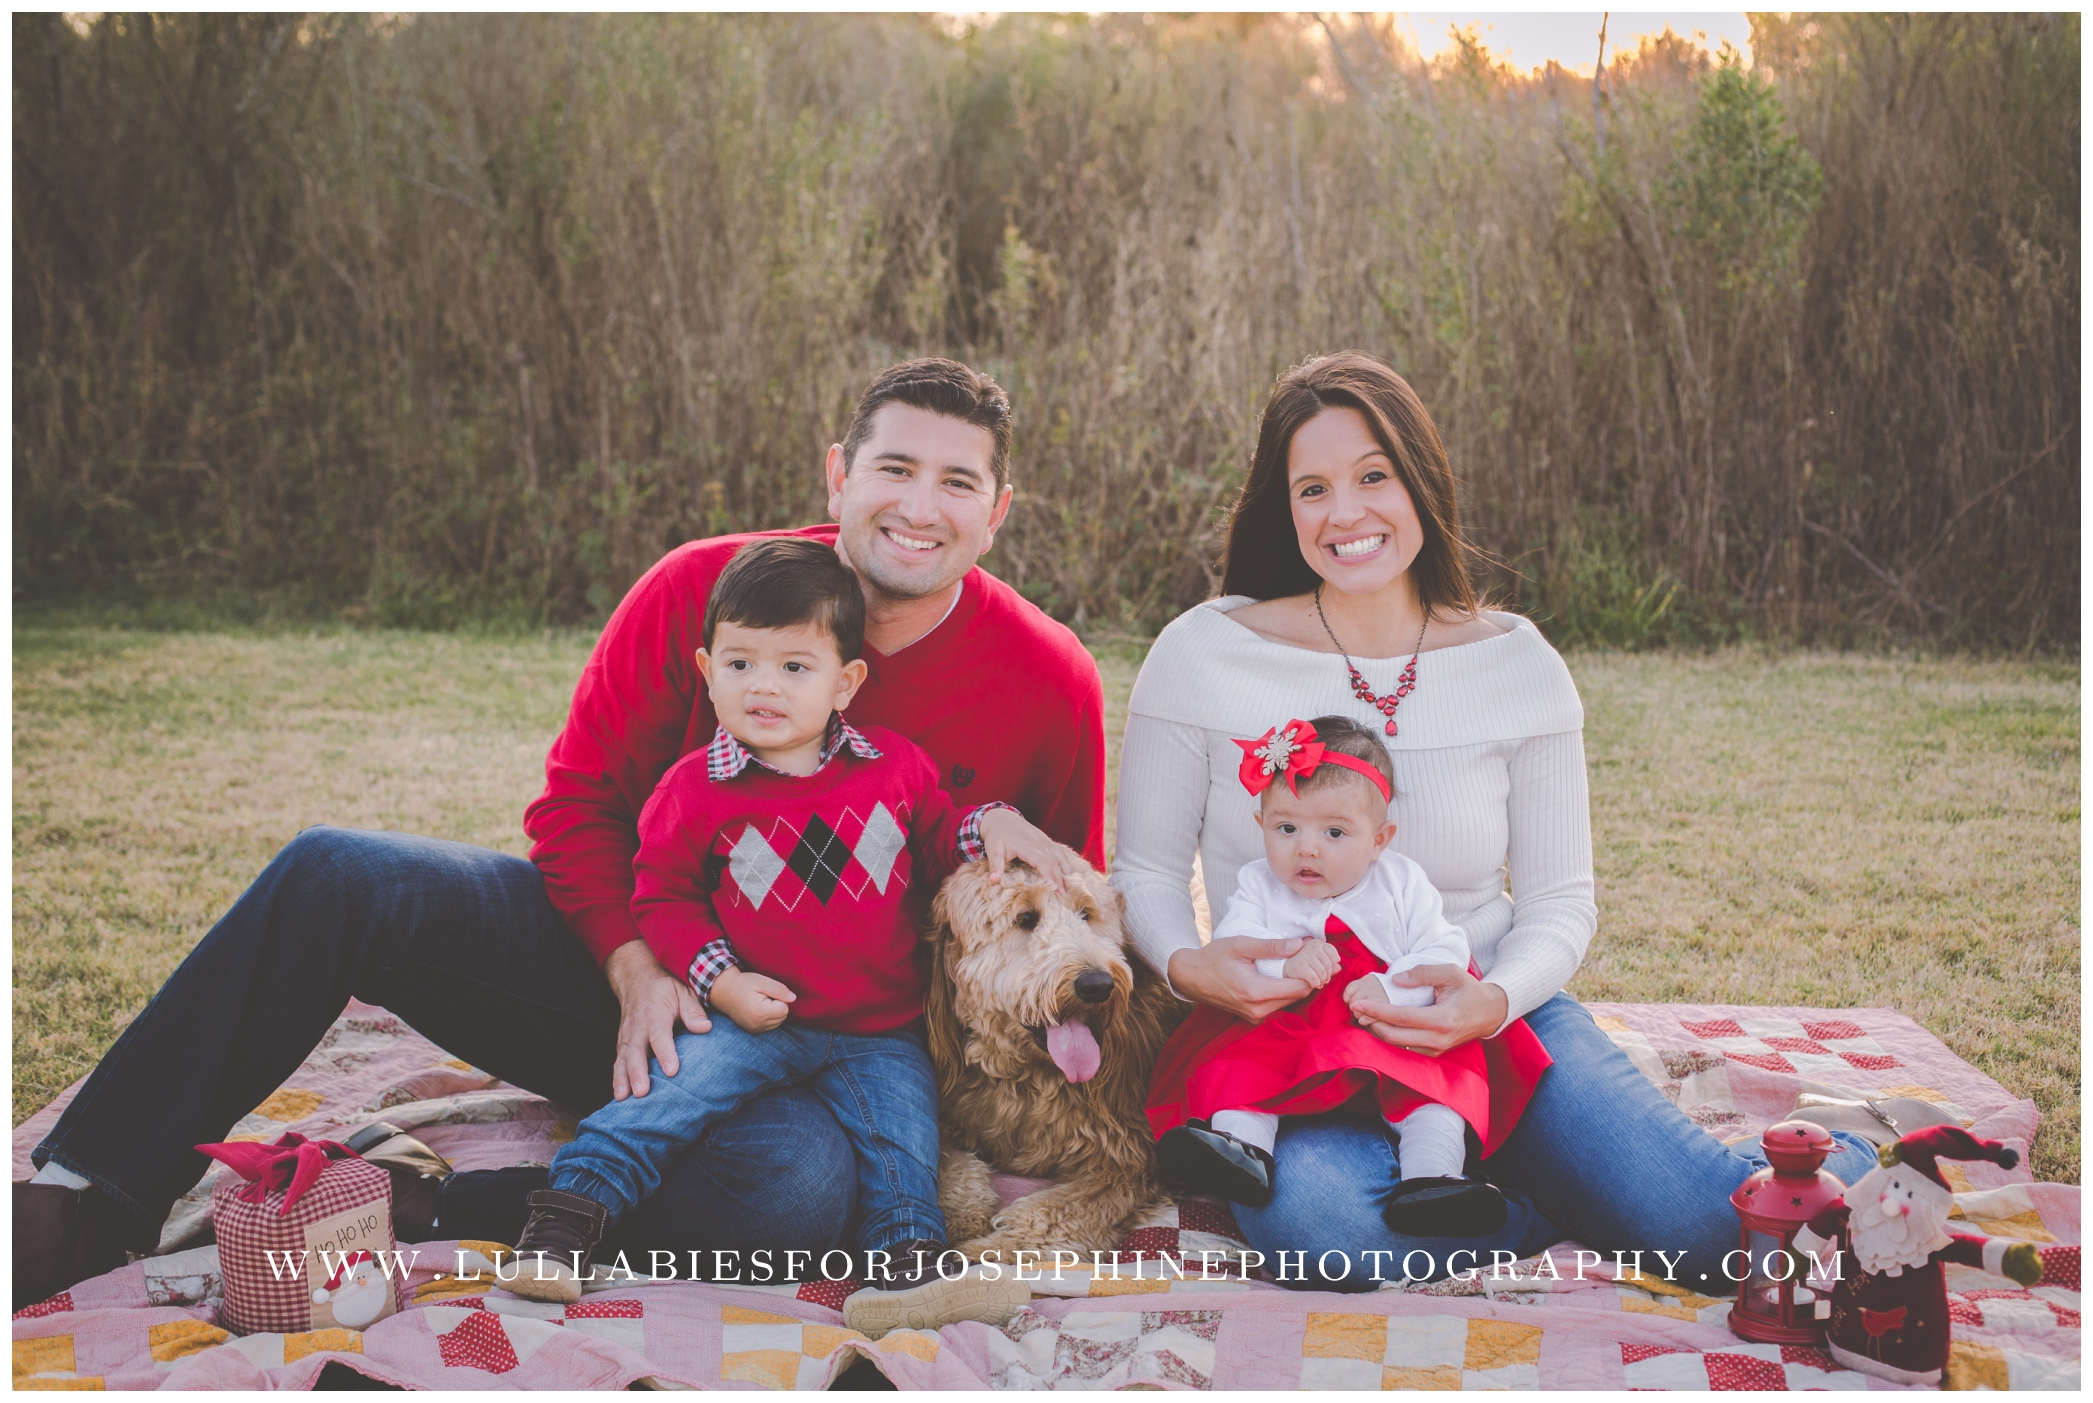 Bergen-County-Family-Photographer-Family-Mini-Sessions-Red-Winter-Photos-Outdoor-Sunset